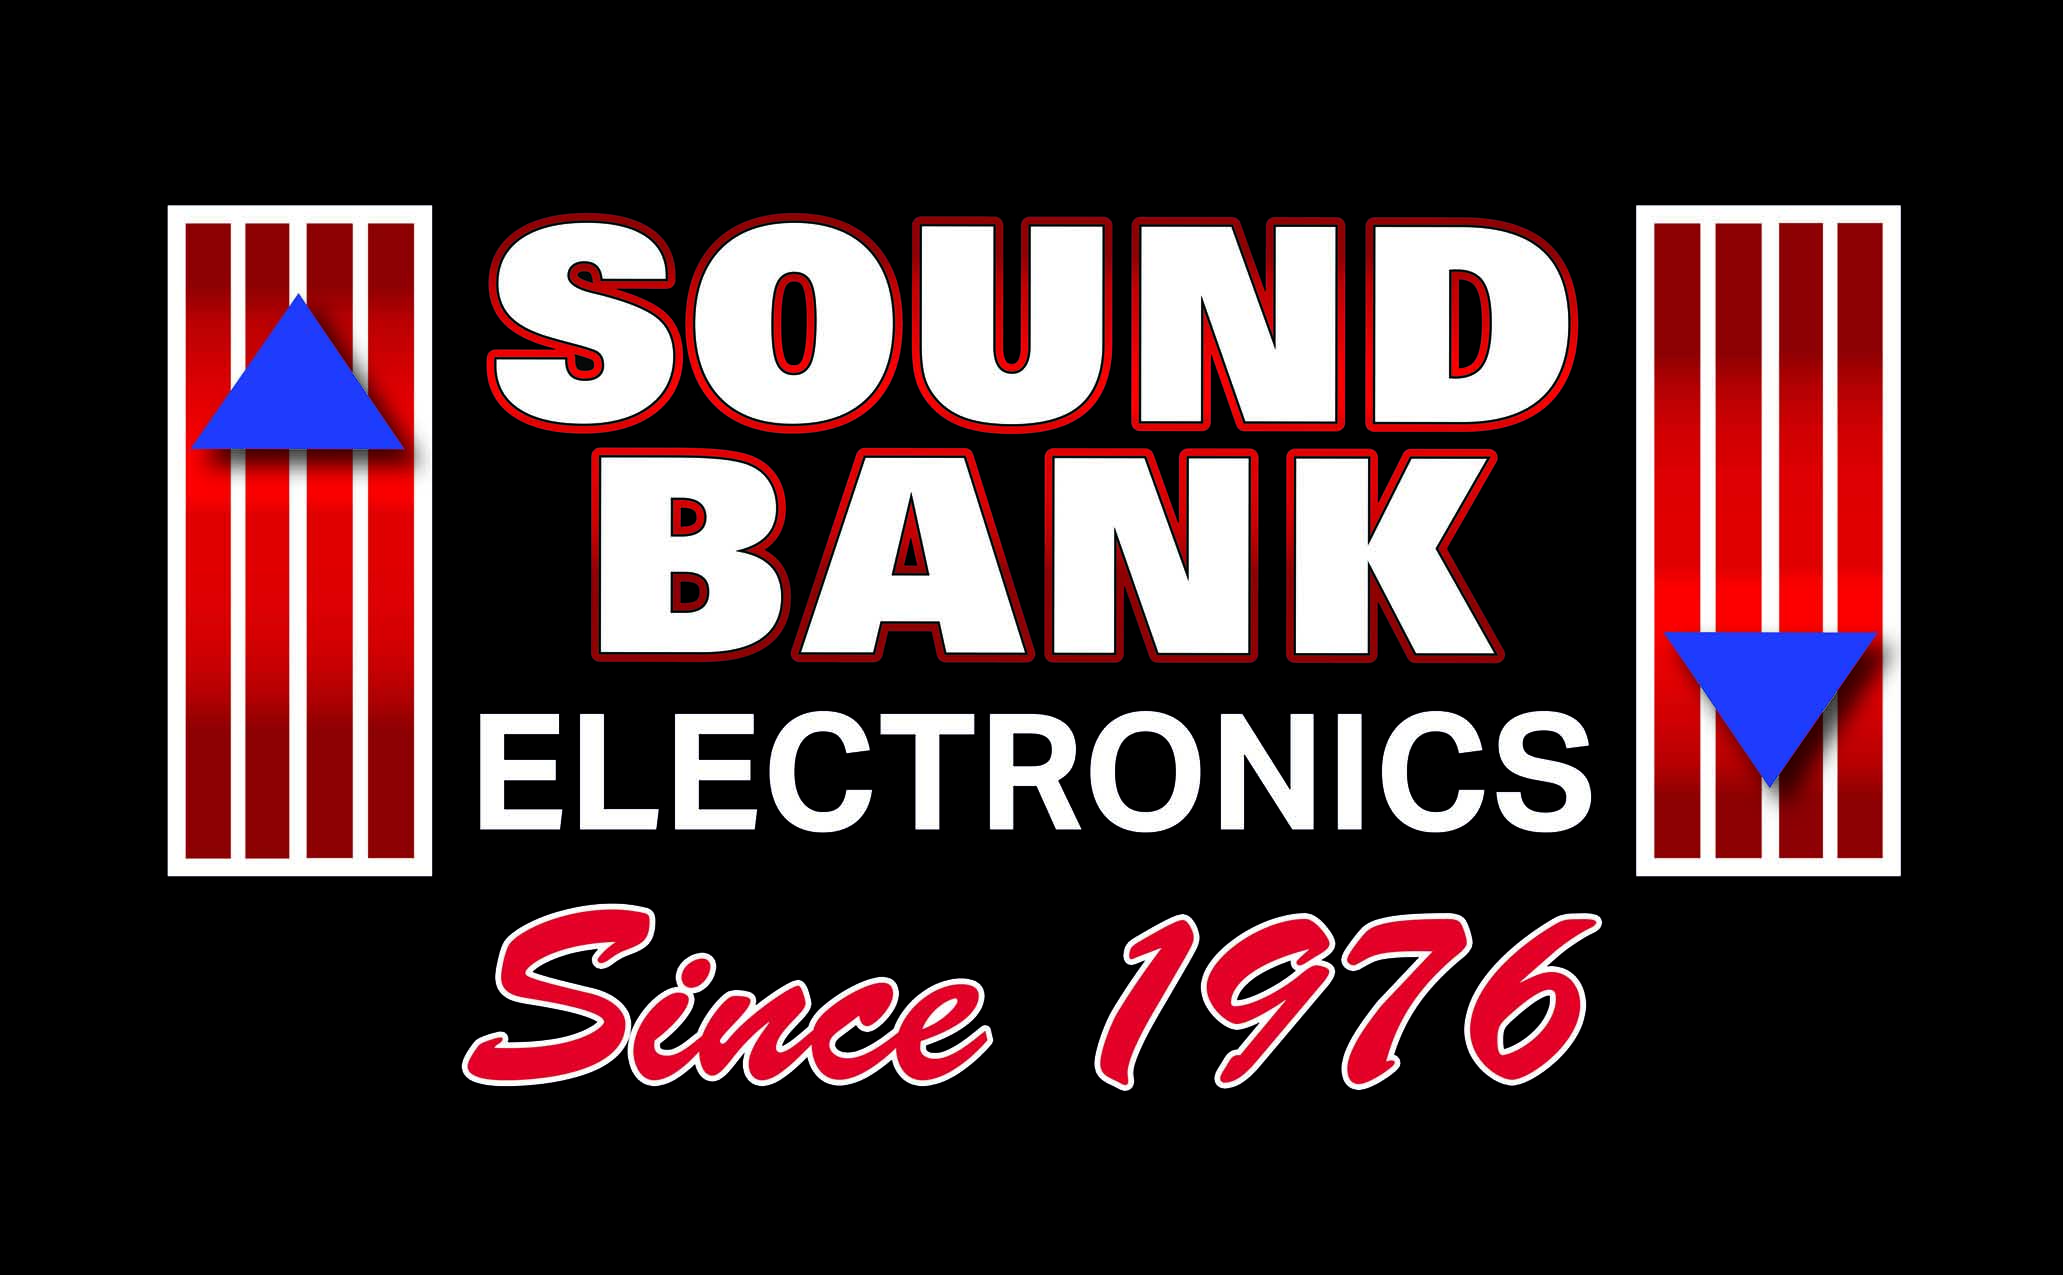 Sound Bank Electronics